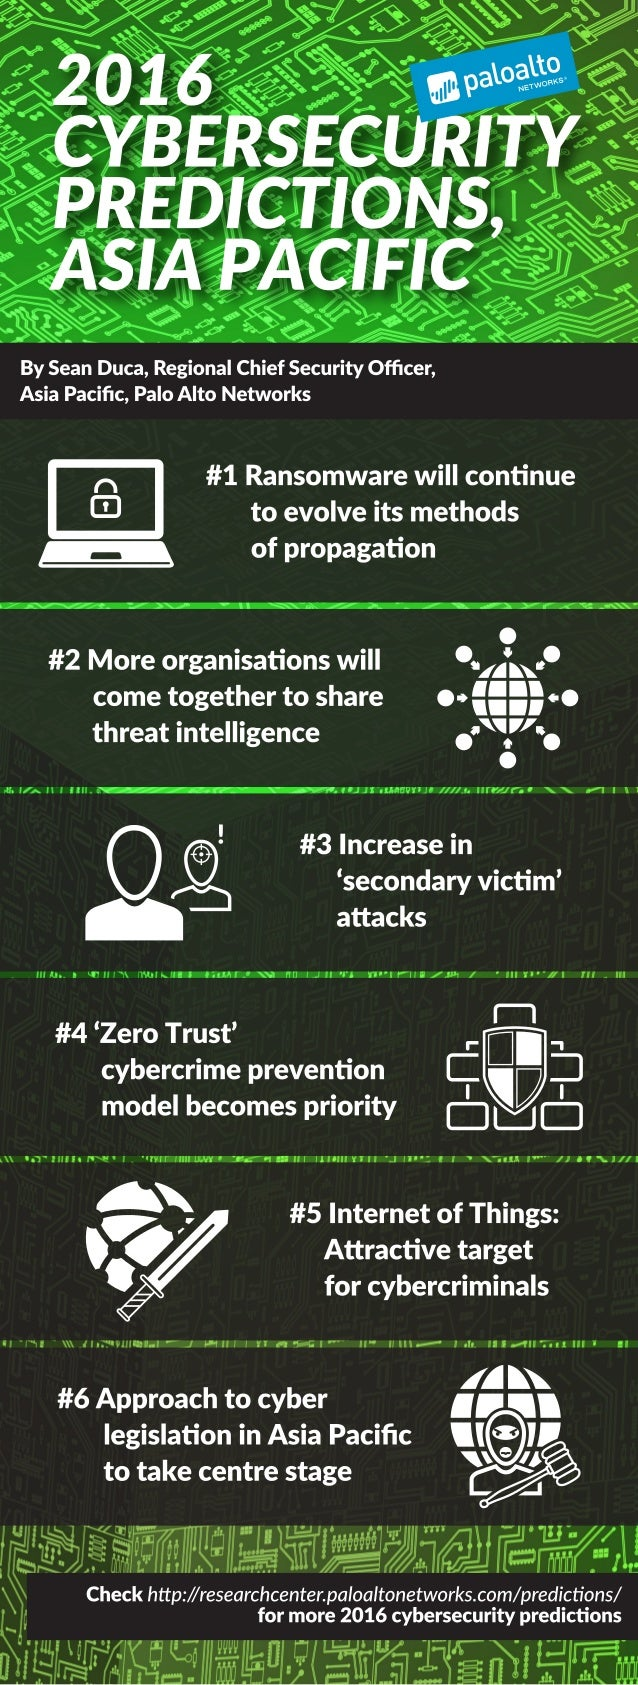 2016 Cybersecurity Predictions for Asia Pacific from Palo Alto Networks VP, CSO-APAC Sean Duca